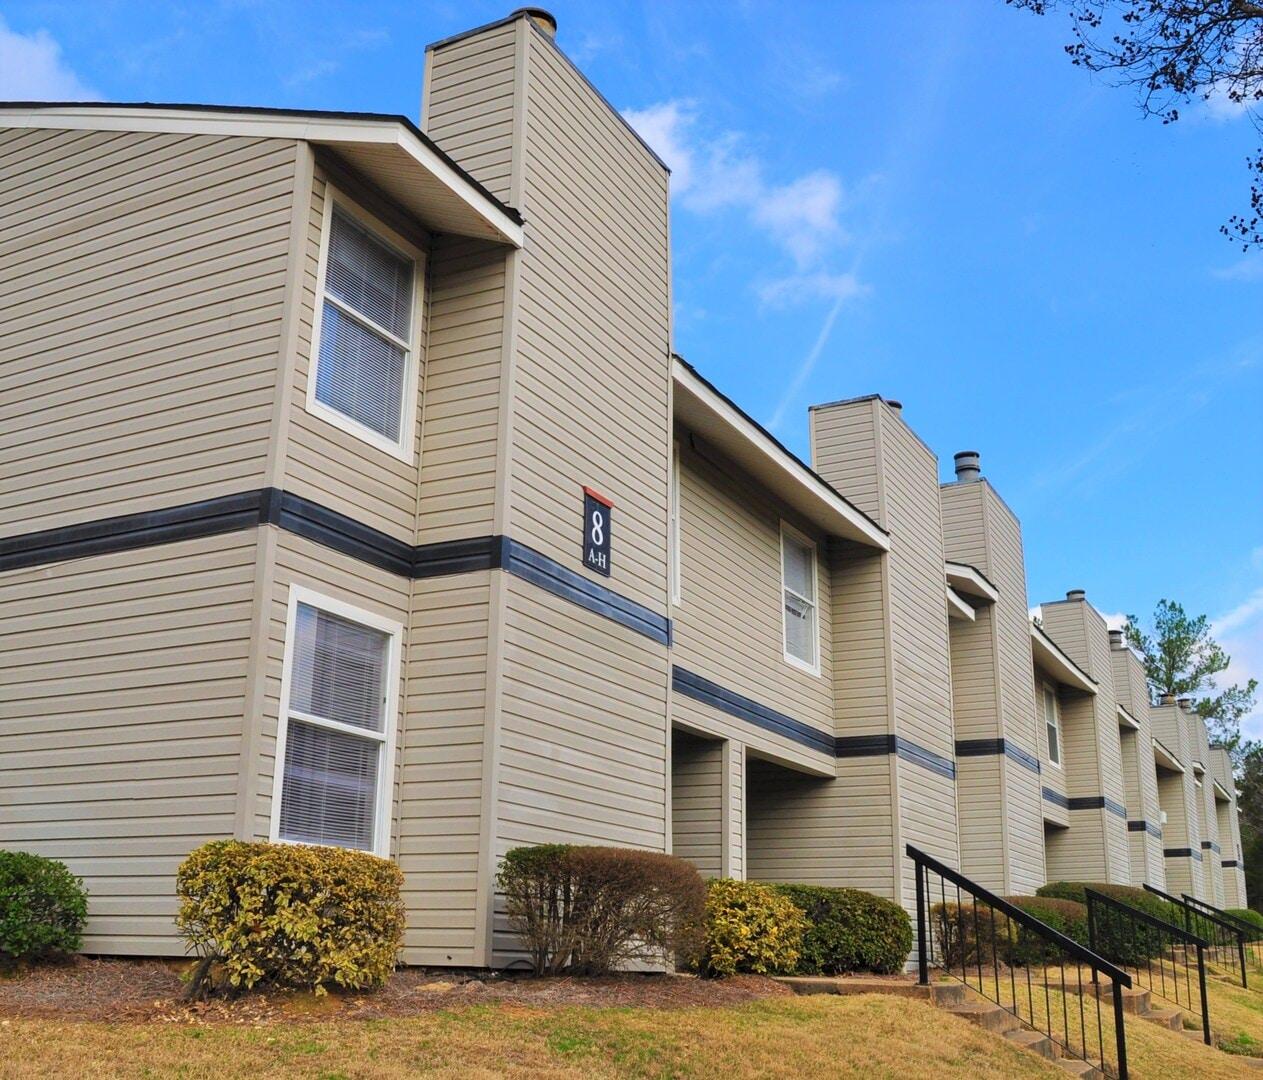 Apartments In Jackson Ms: Apartments For Rent In Ridgeland, MS